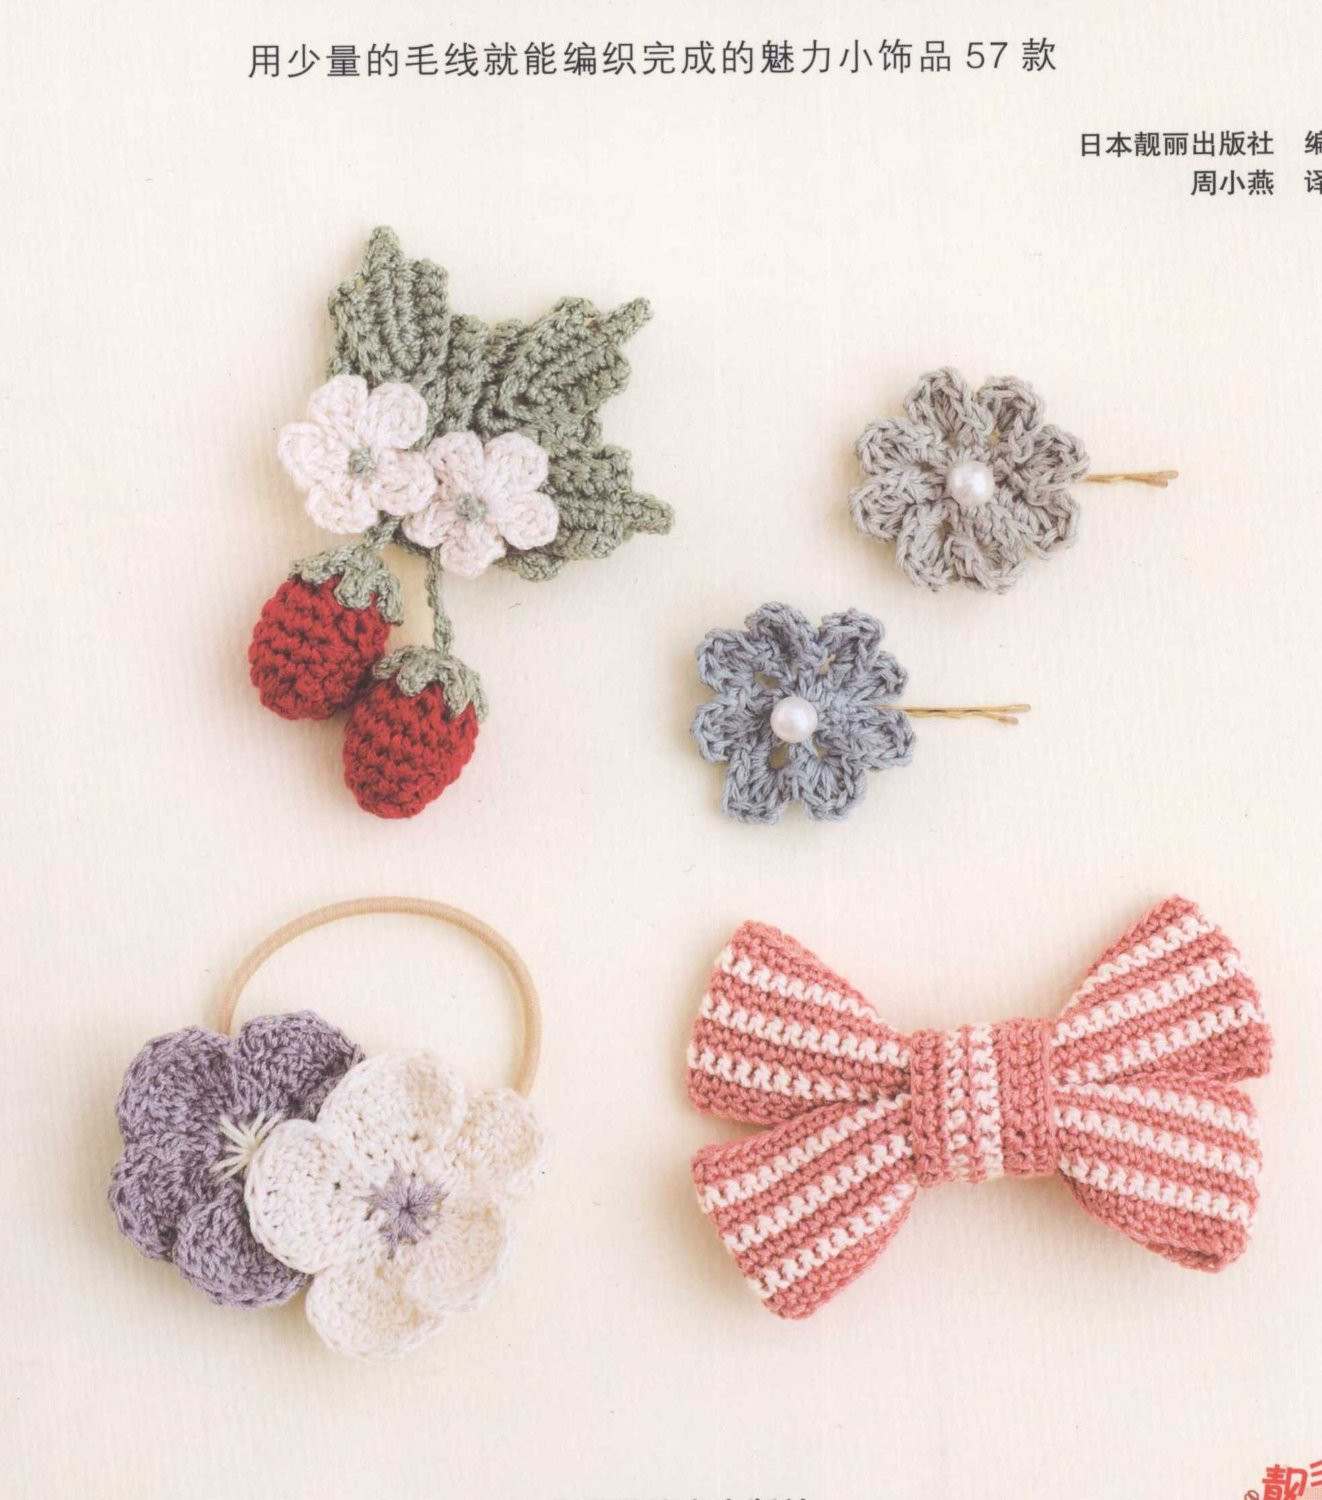 Crochet Accessories Awesome Japanese Crochet Patterns Pdf Crochet Hair Accessories Of New 47 Photos Crochet Accessories